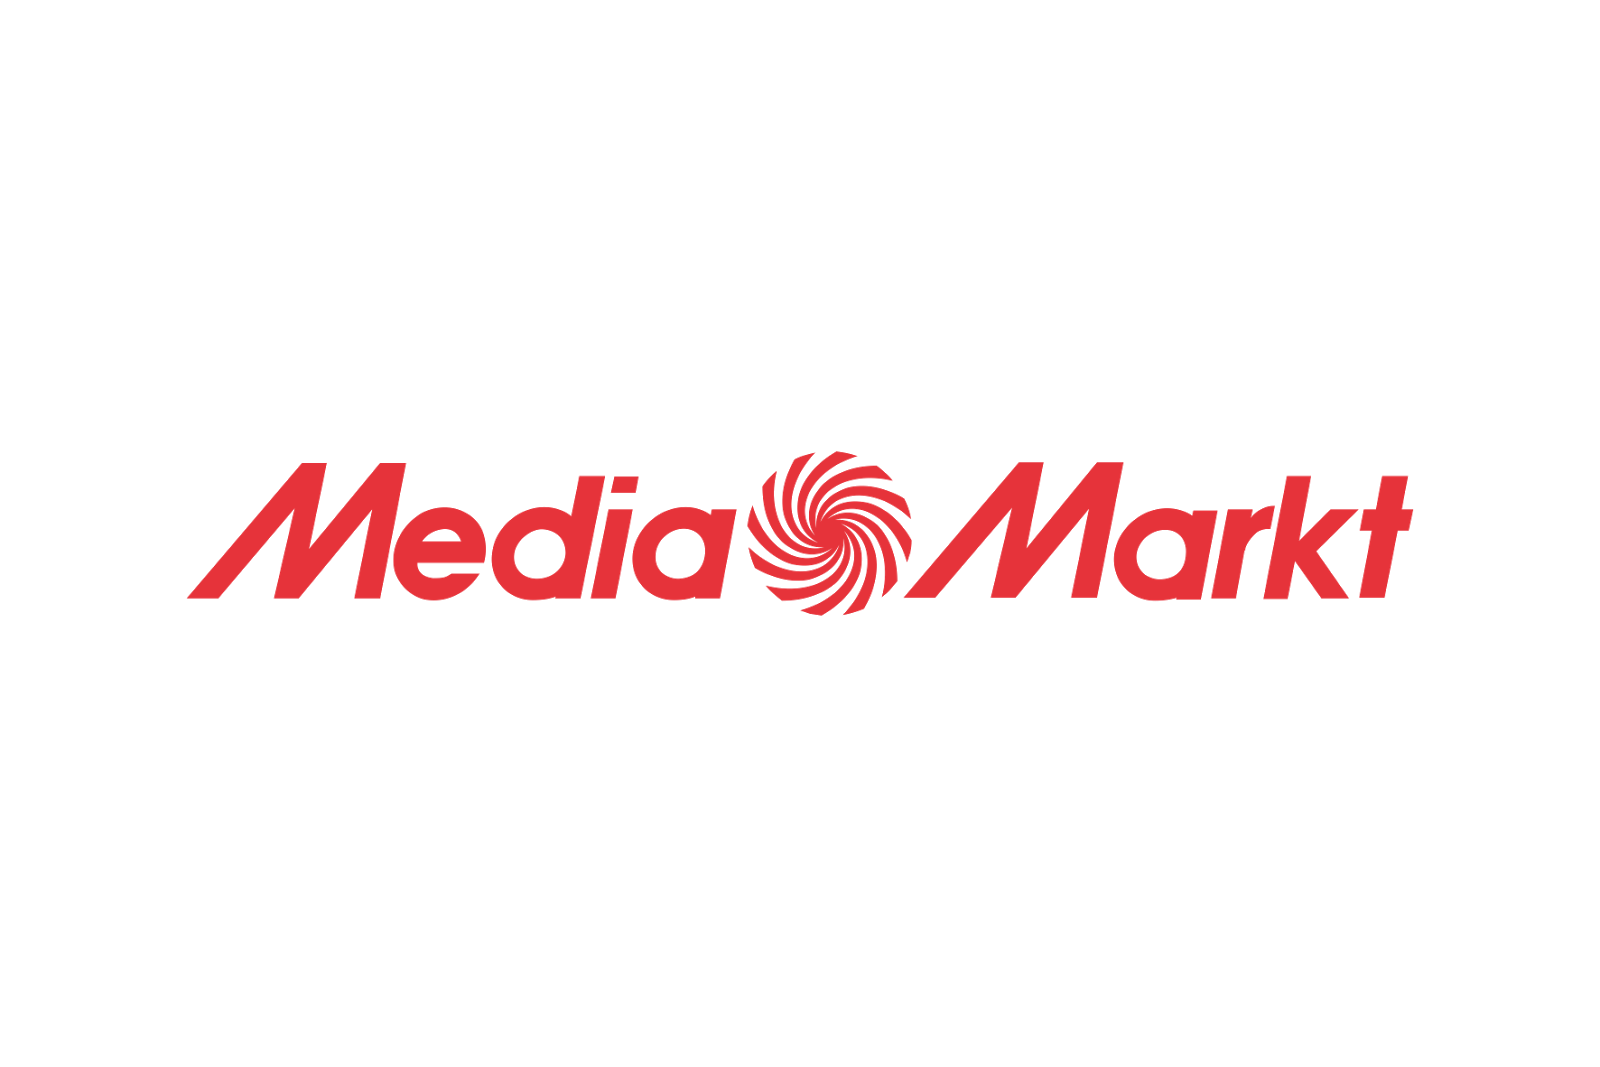 Media Markt Logo Wallpaper